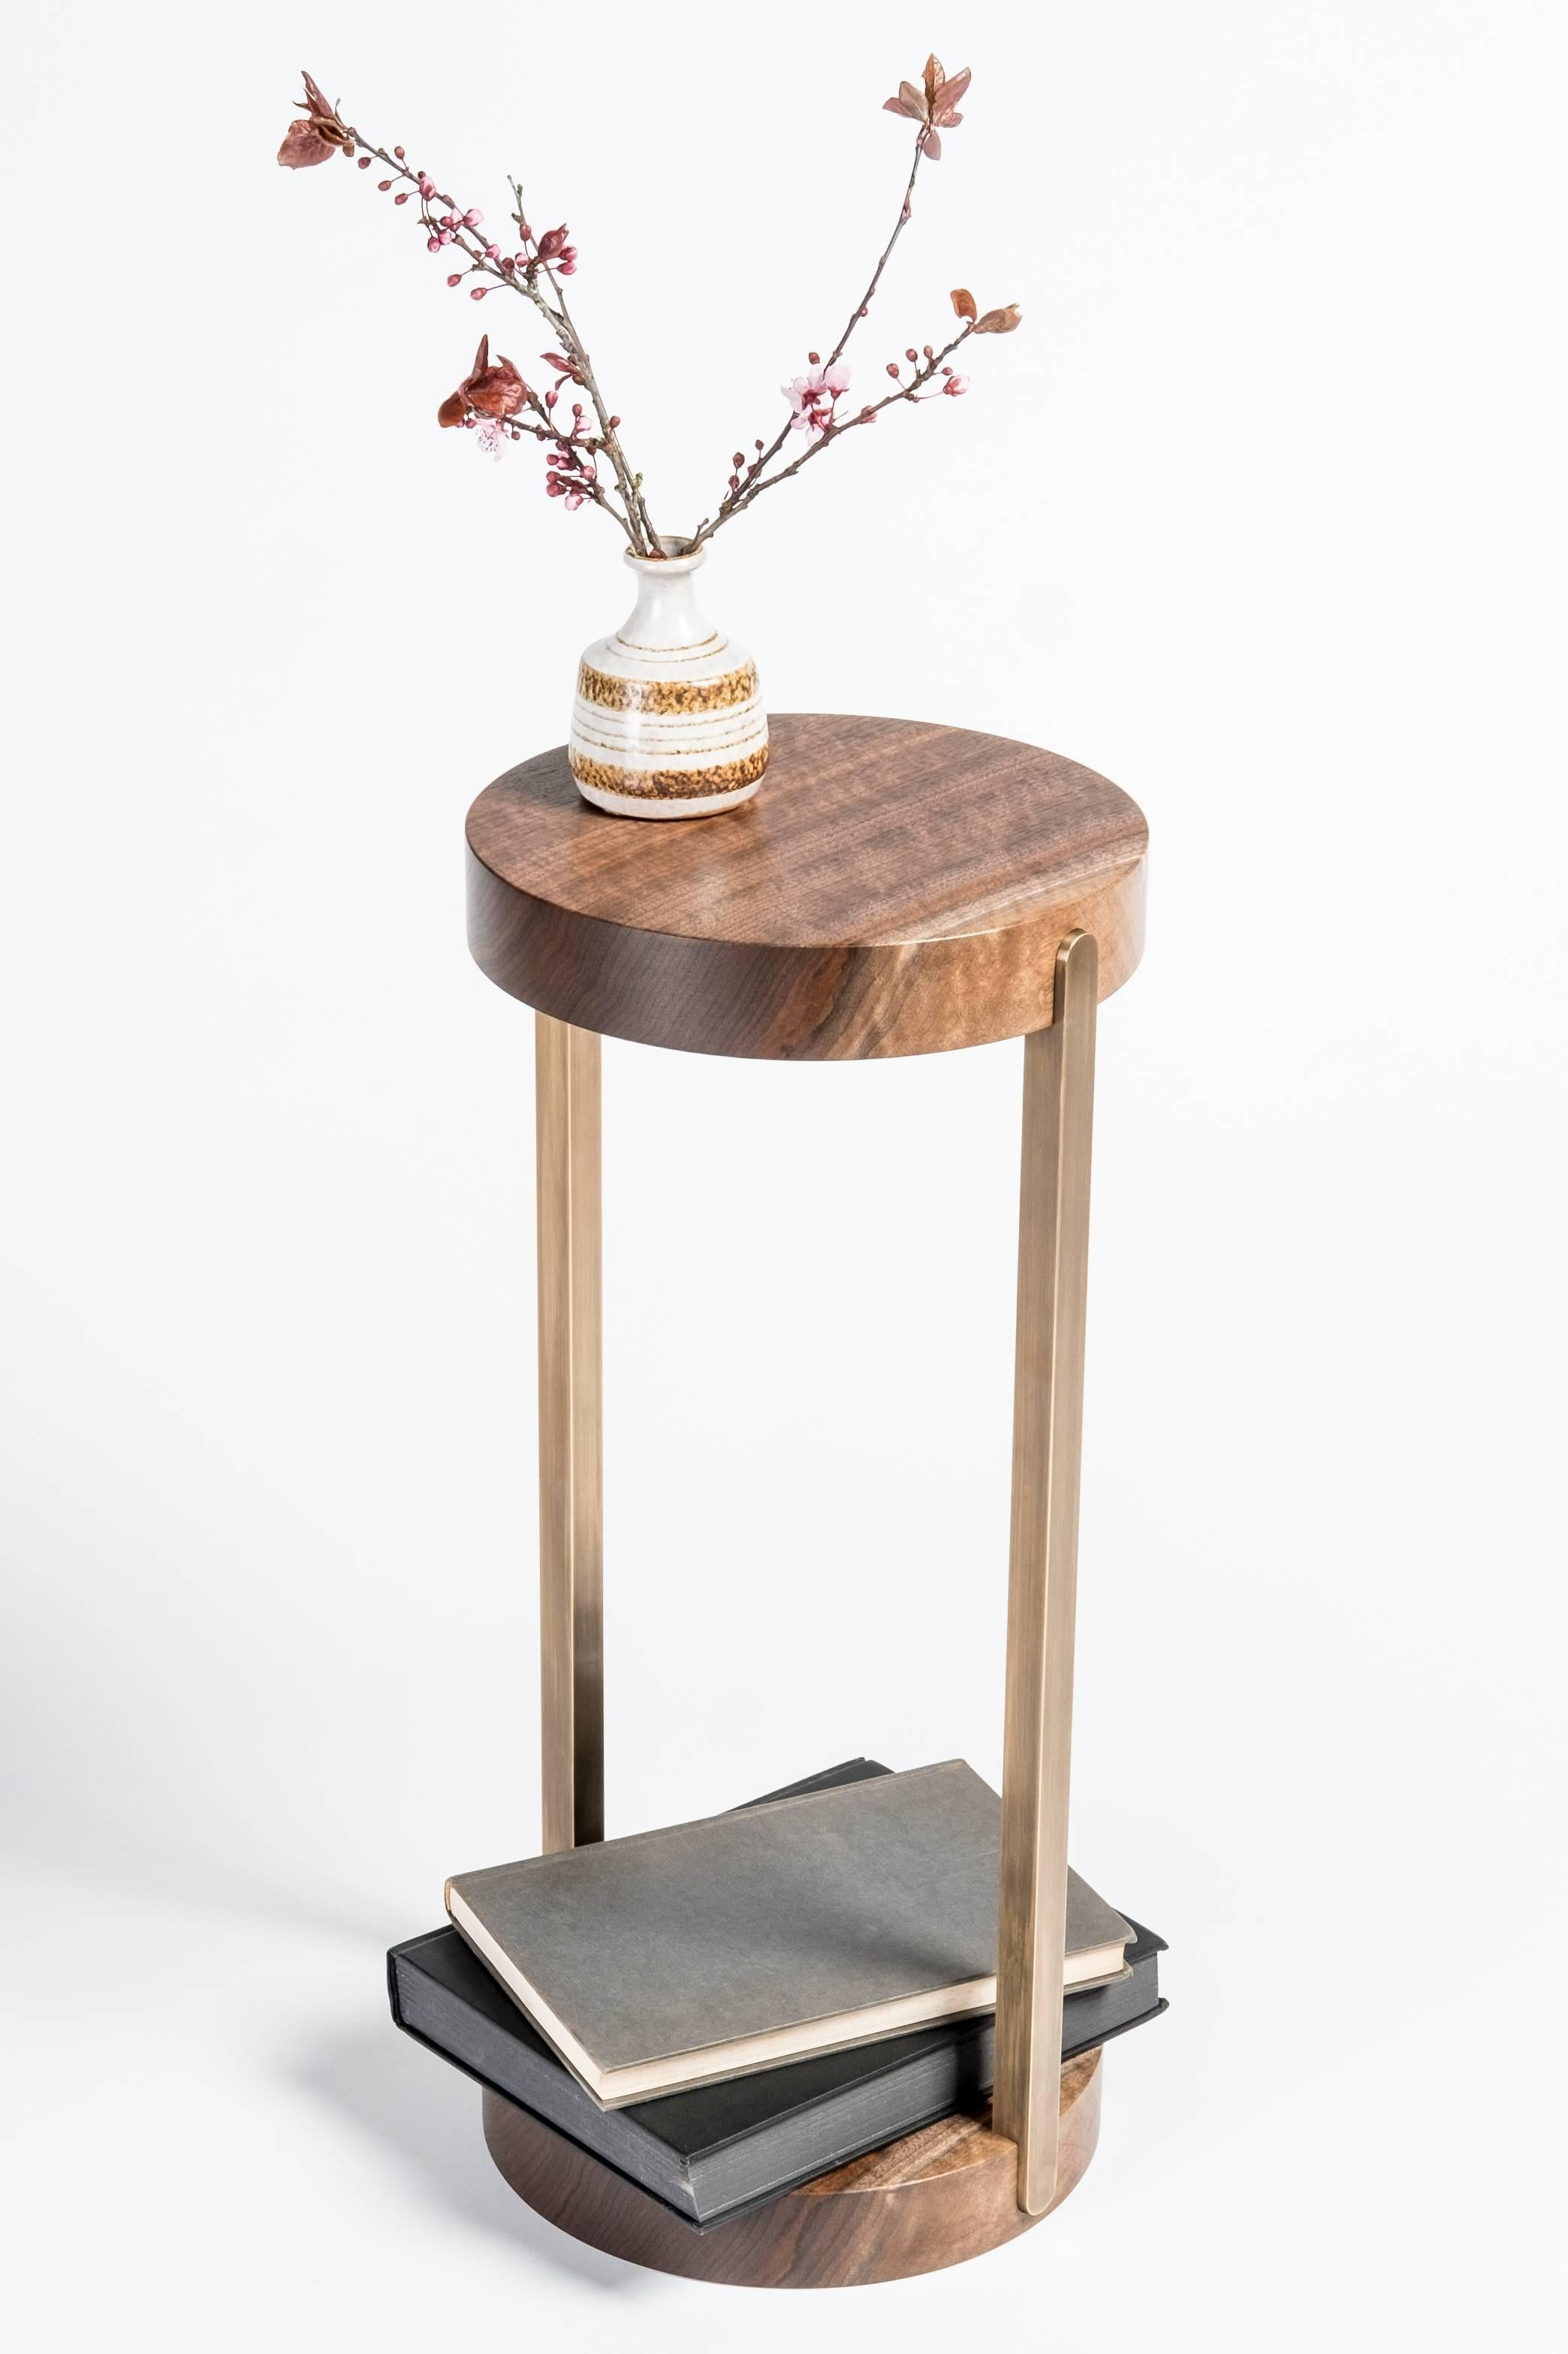 Woodwork Union Mini Side Table Stand By Tretiak Works, Contemporary Walnut  Brass For Sale